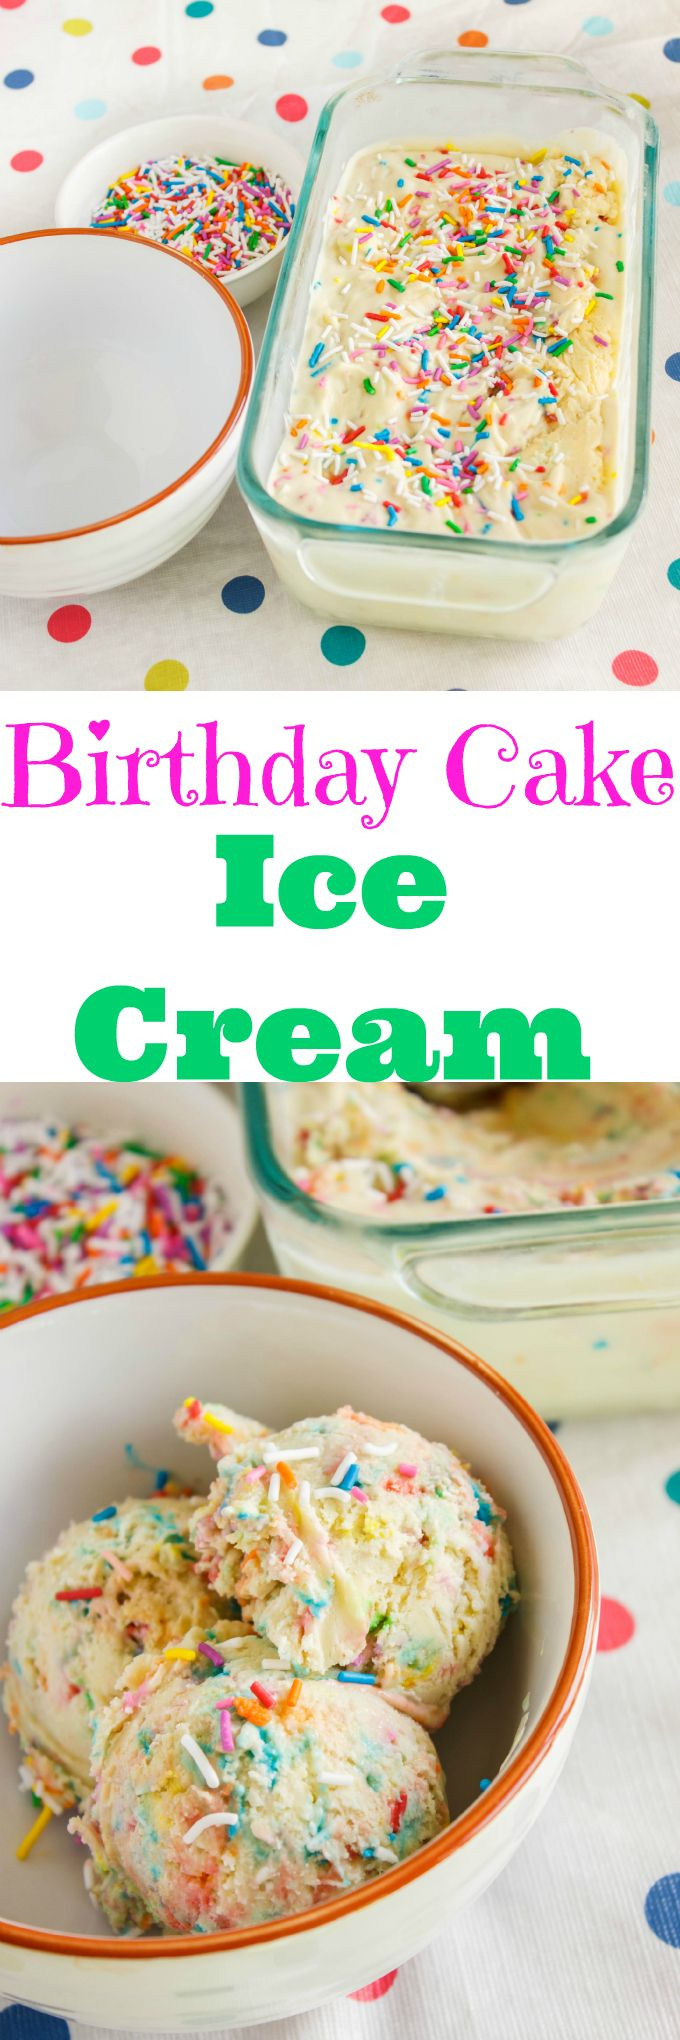 Best ideas about Birthday Cake Flavors . Save or Pin Best 25 Birthday Cake Flavors ideas that you will like on Now.